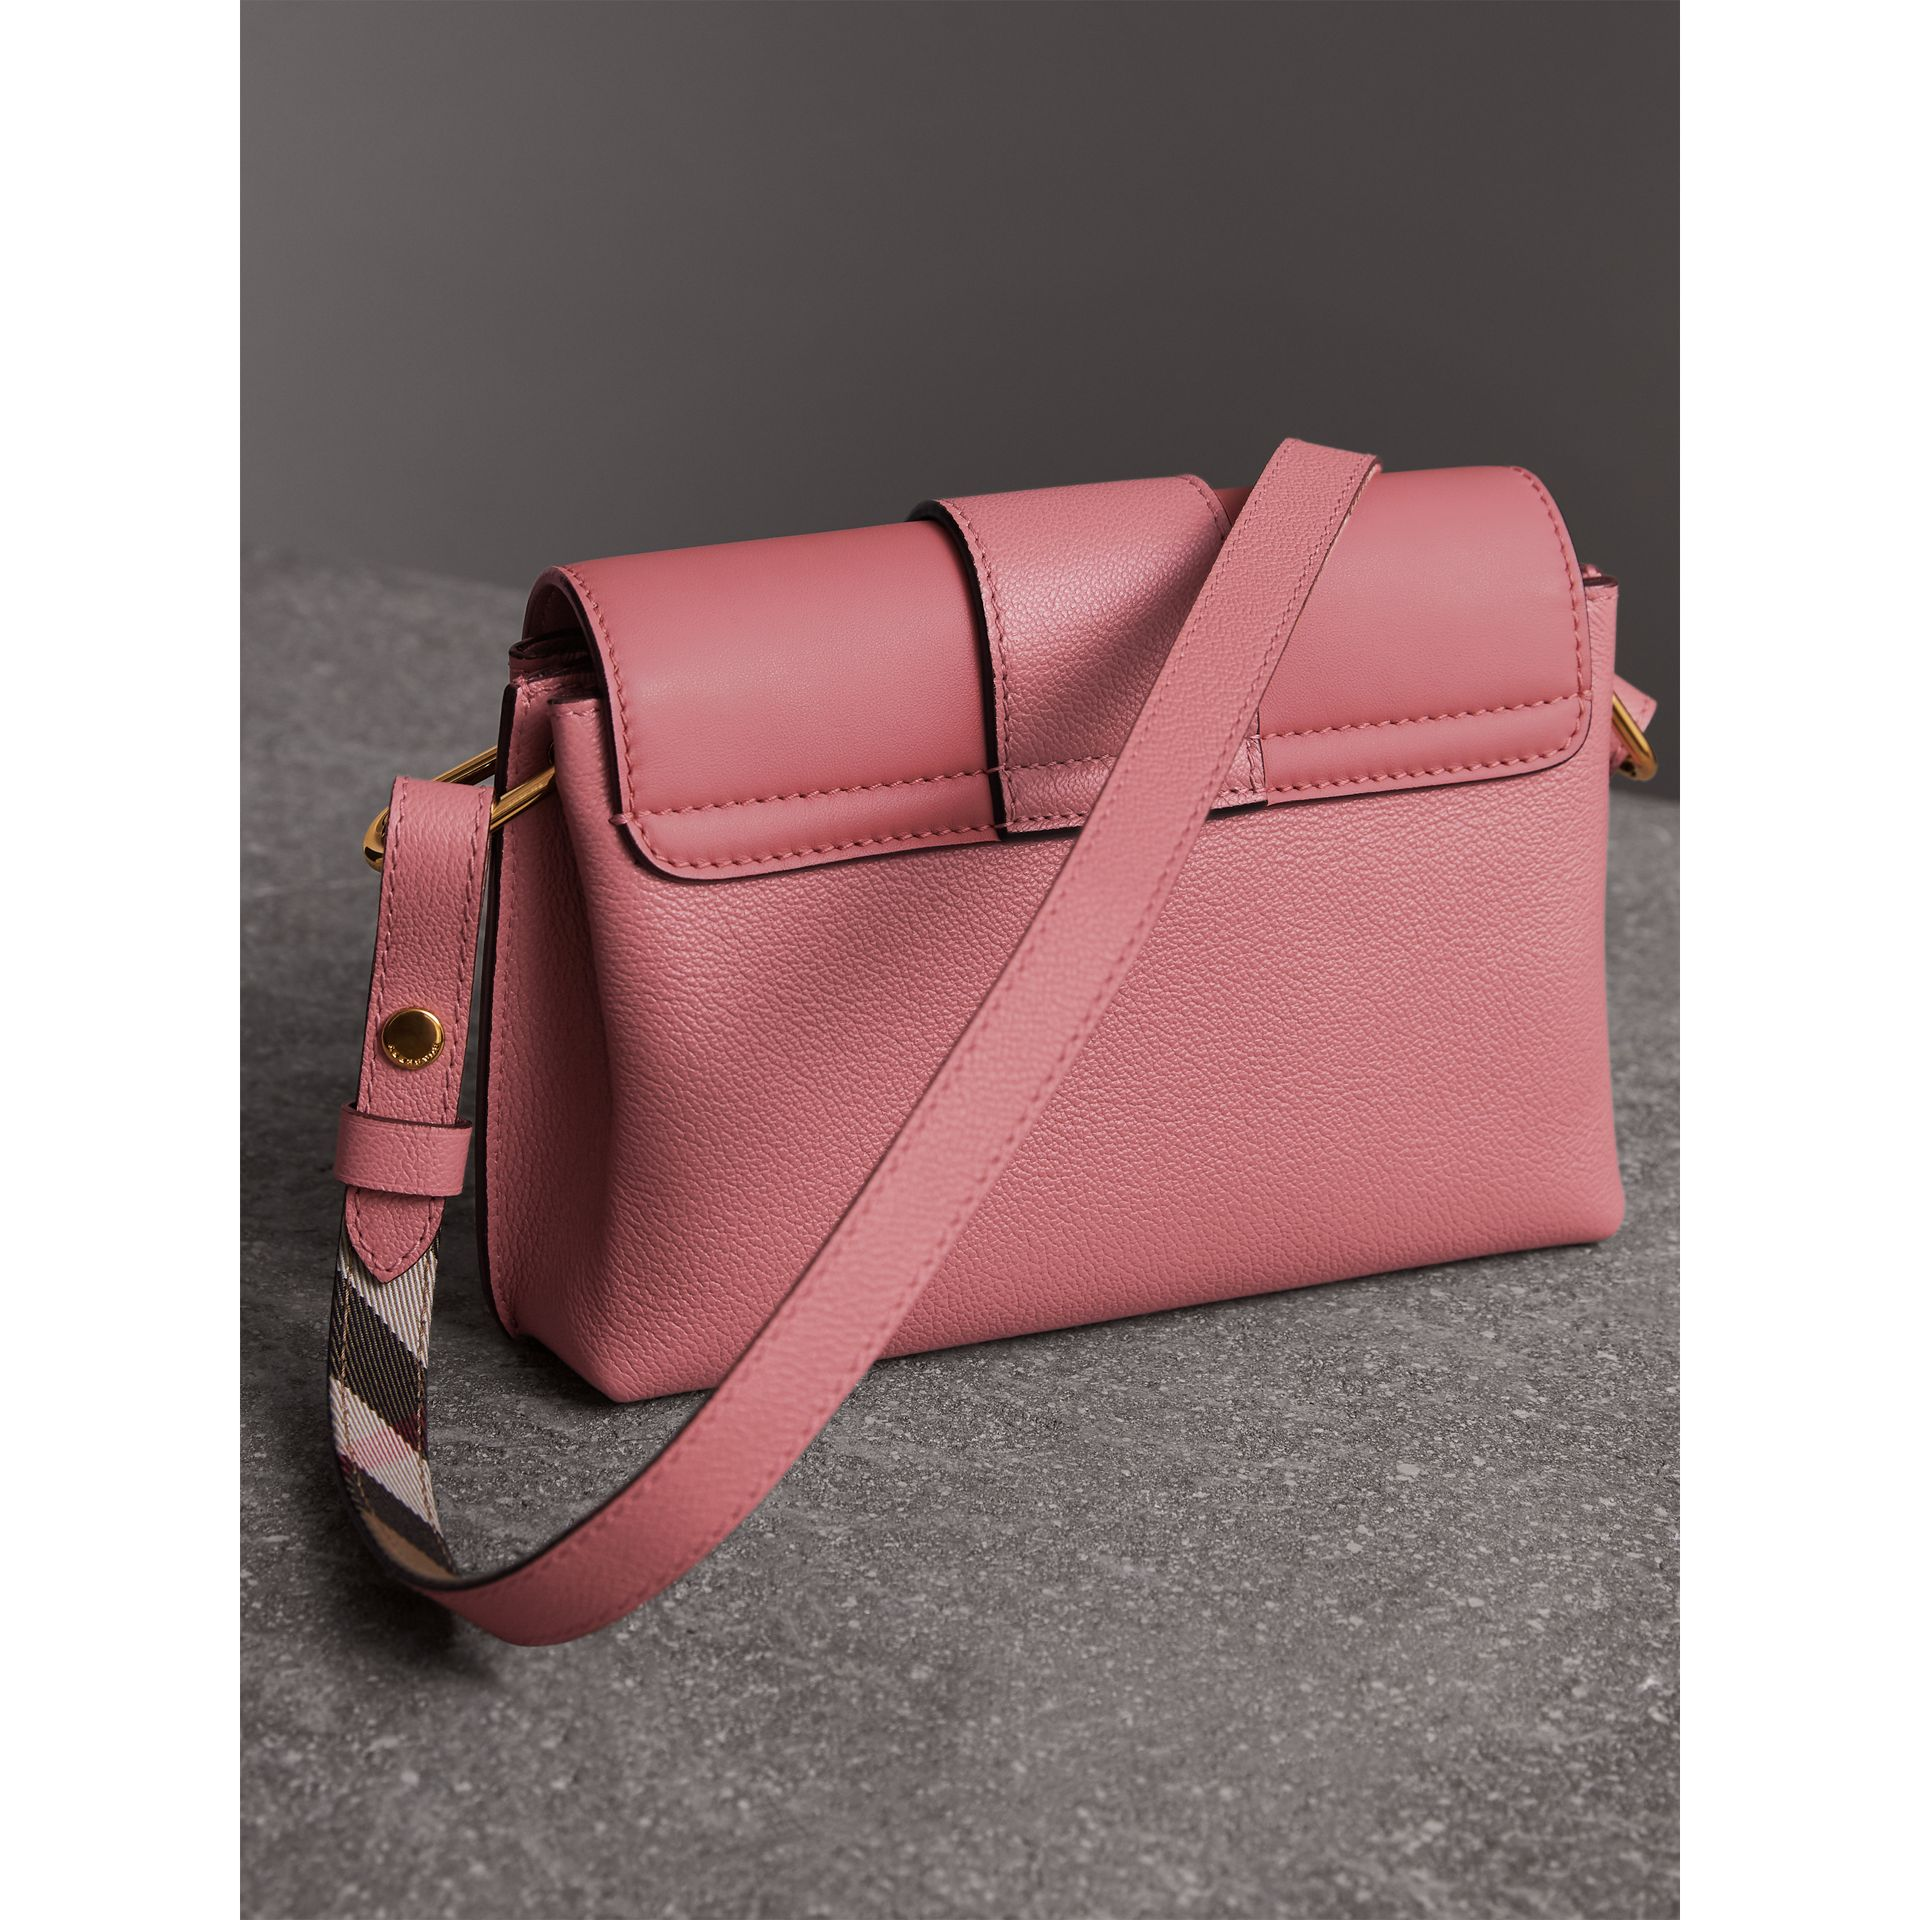 The Buckle Crossbody Bag in Leather in Dusty Pink - Women | Burberry Canada - gallery image 5